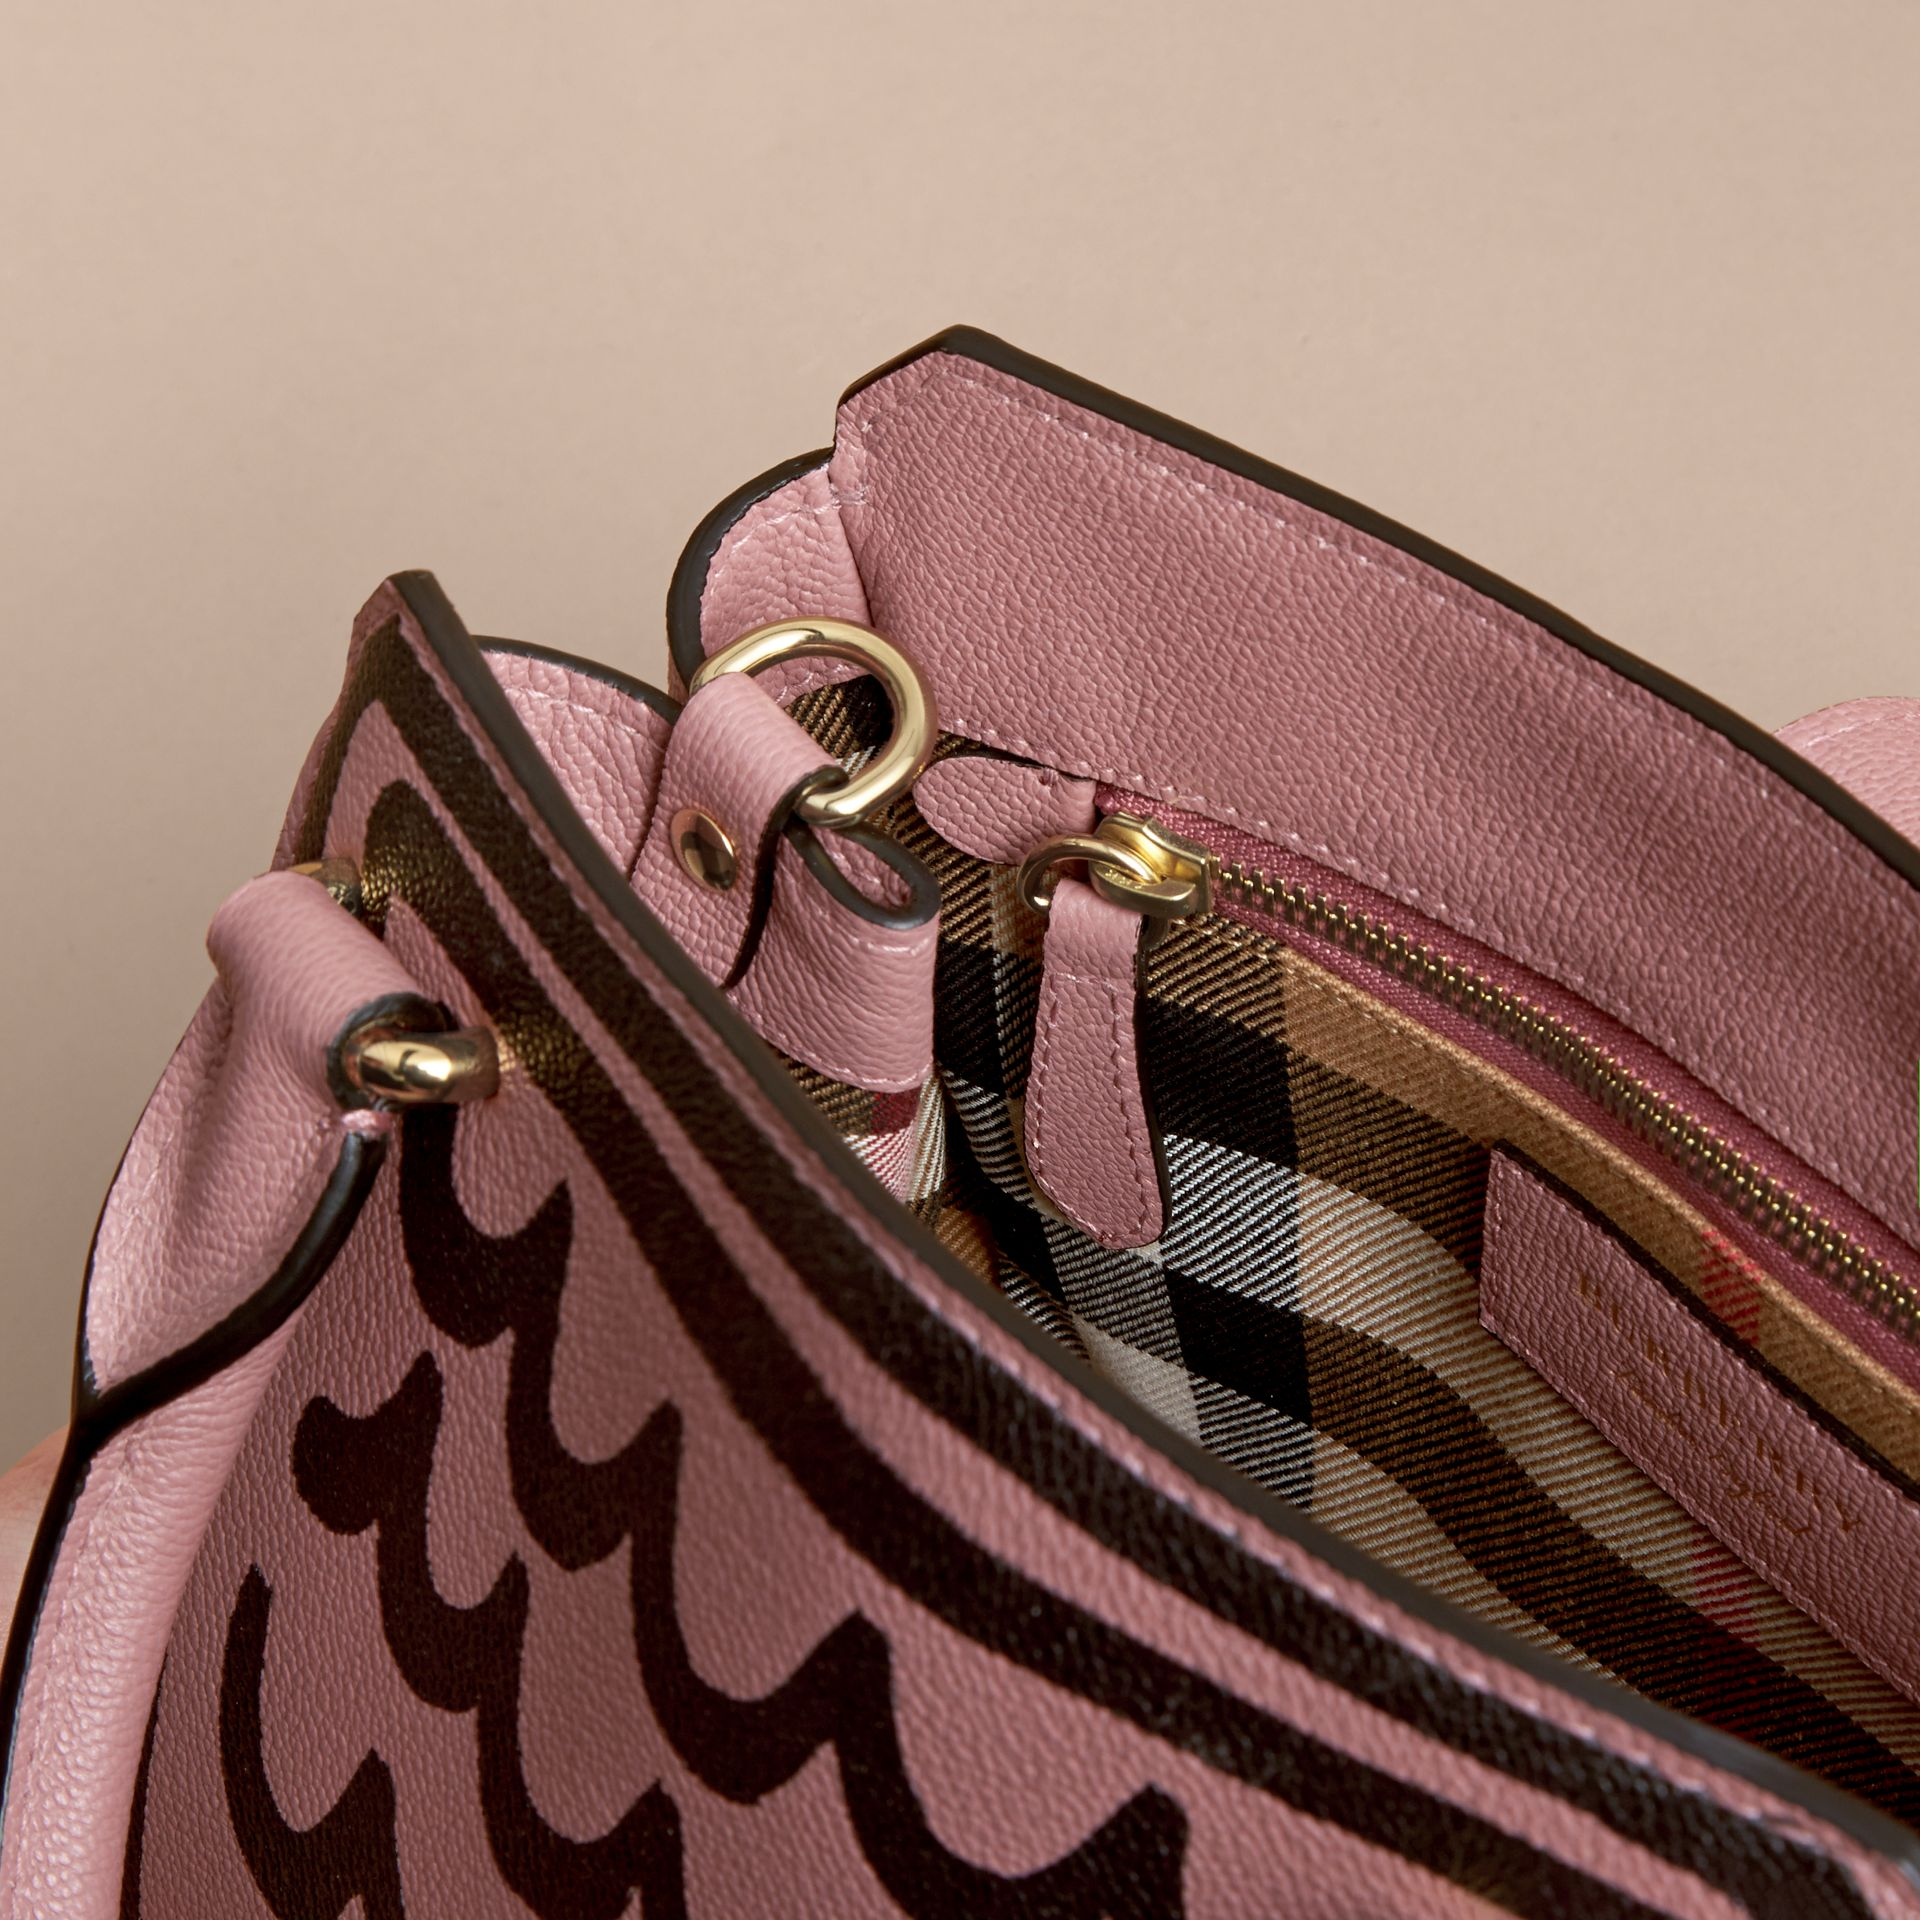 The Small Buckle Tote in Trompe L'oeil Print Leather - Women | Burberry - gallery image 6